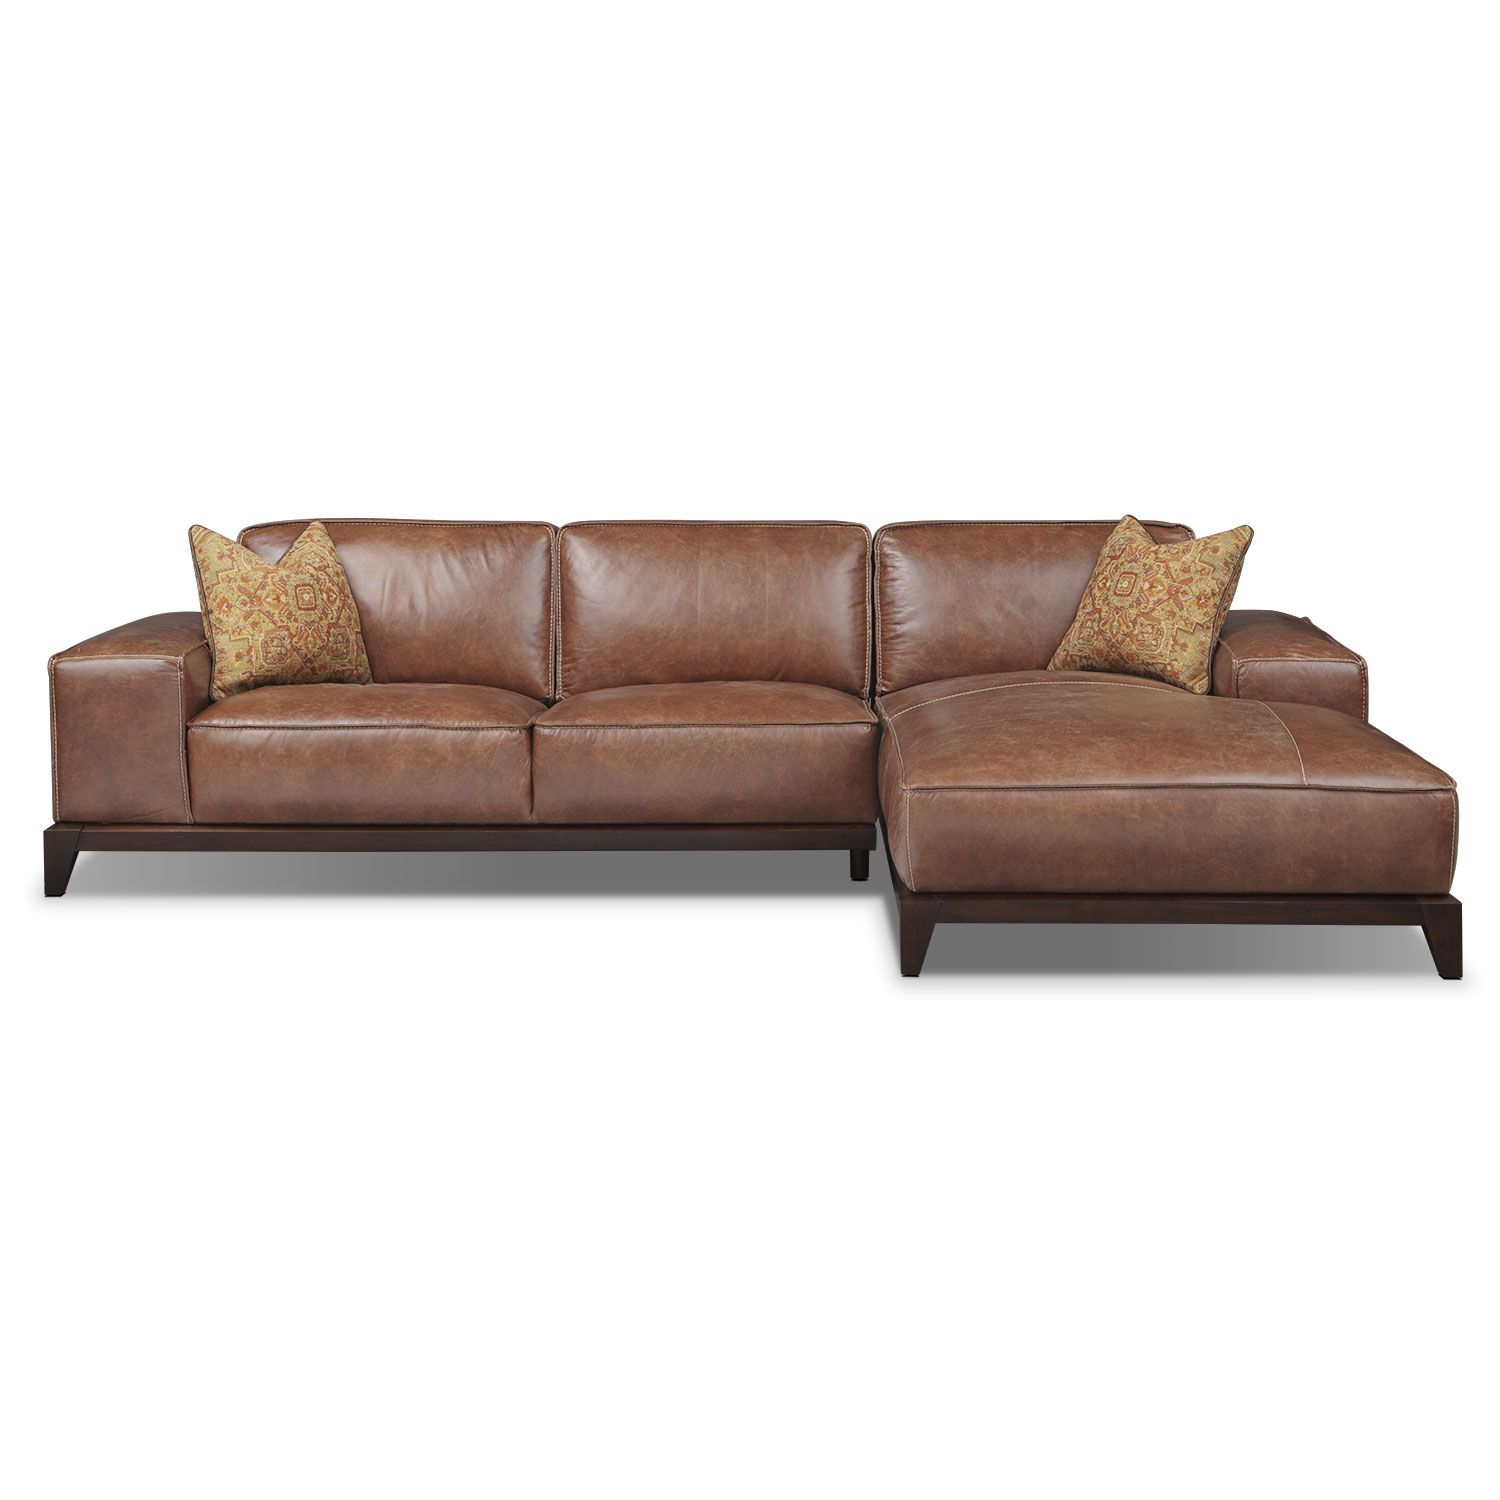 Harrison 2 Pc. Sectional | American Signature Furniture  sc 1 st  Pinterest : american signature sectional - Sectionals, Sofas & Couches